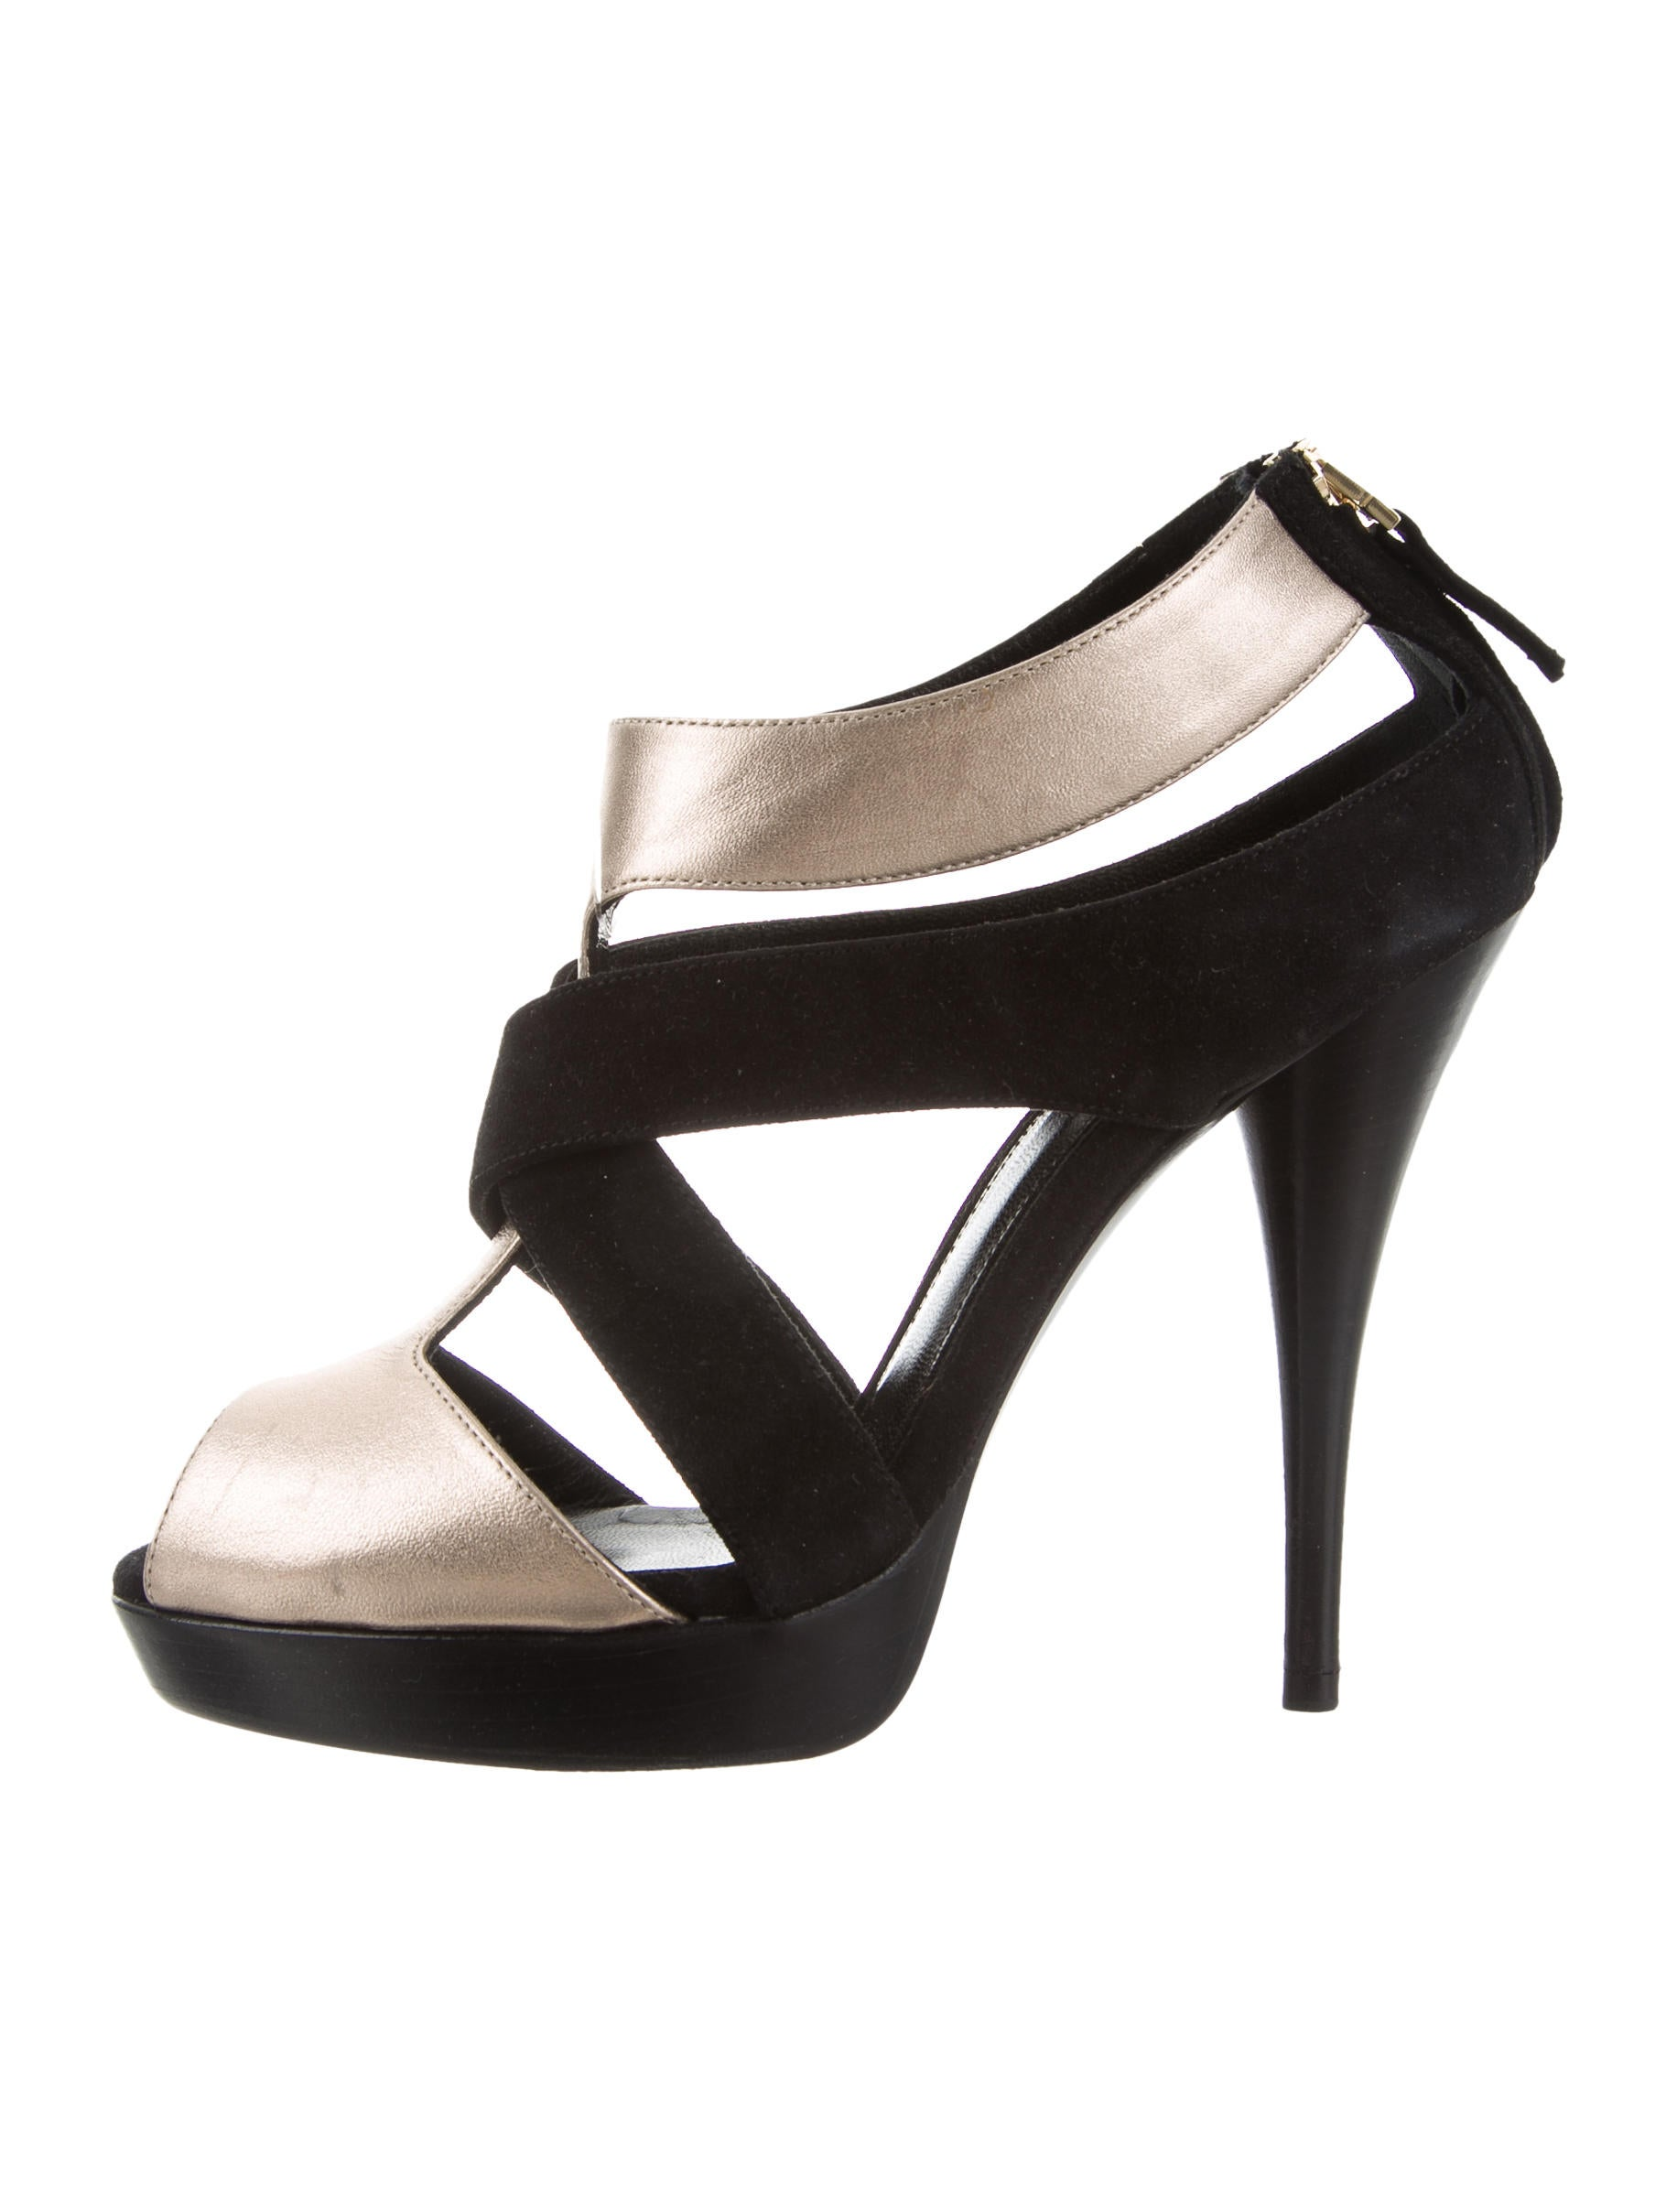 Fendi Leather Multistrap Sandals for nice cheap online 2r1YI628J